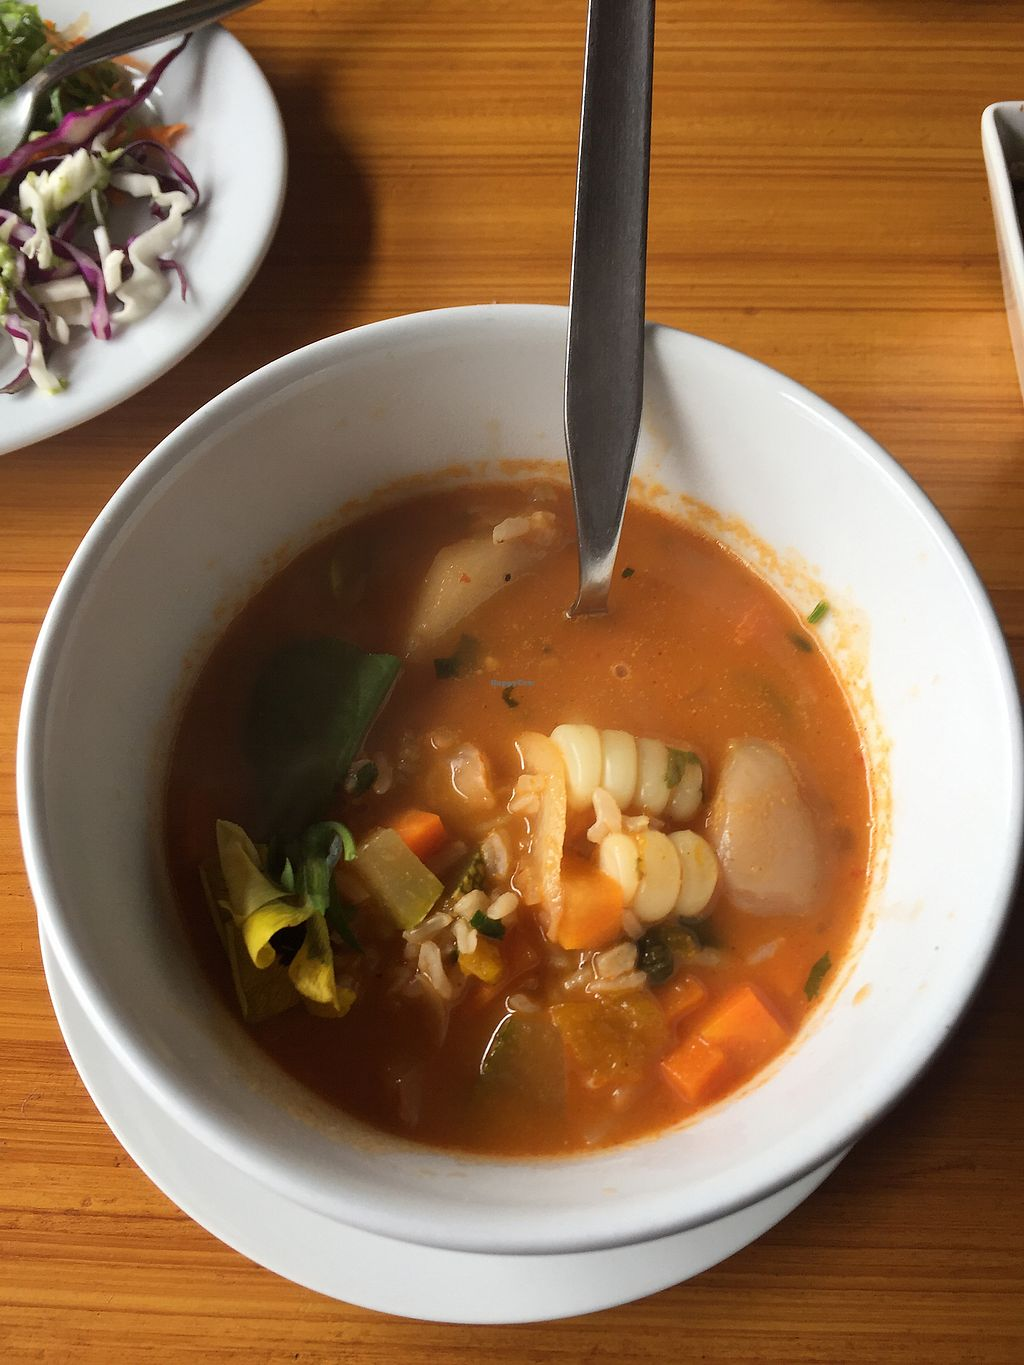 """Photo of Chia Vegan Kitchen  by <a href=""""/members/profile/Dianebg"""">Dianebg</a> <br/>Veggie soup  <br/> October 17, 2017  - <a href='/contact/abuse/image/96436/316131'>Report</a>"""